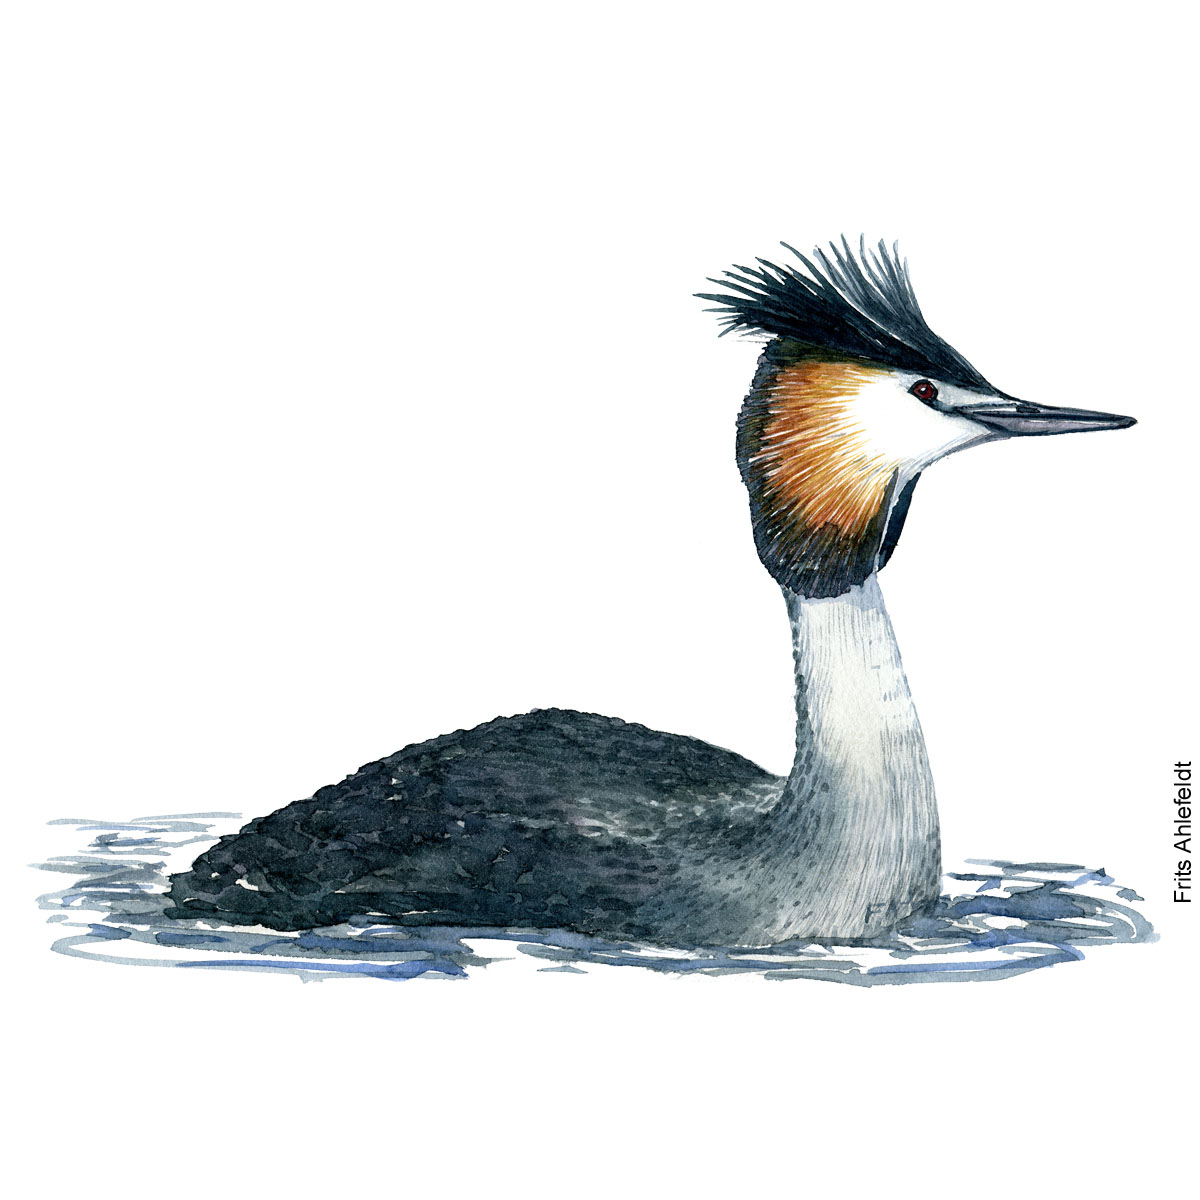 Great crested grebe side view. Bird watercolor illustration handmade by Frits Ahlefeldt